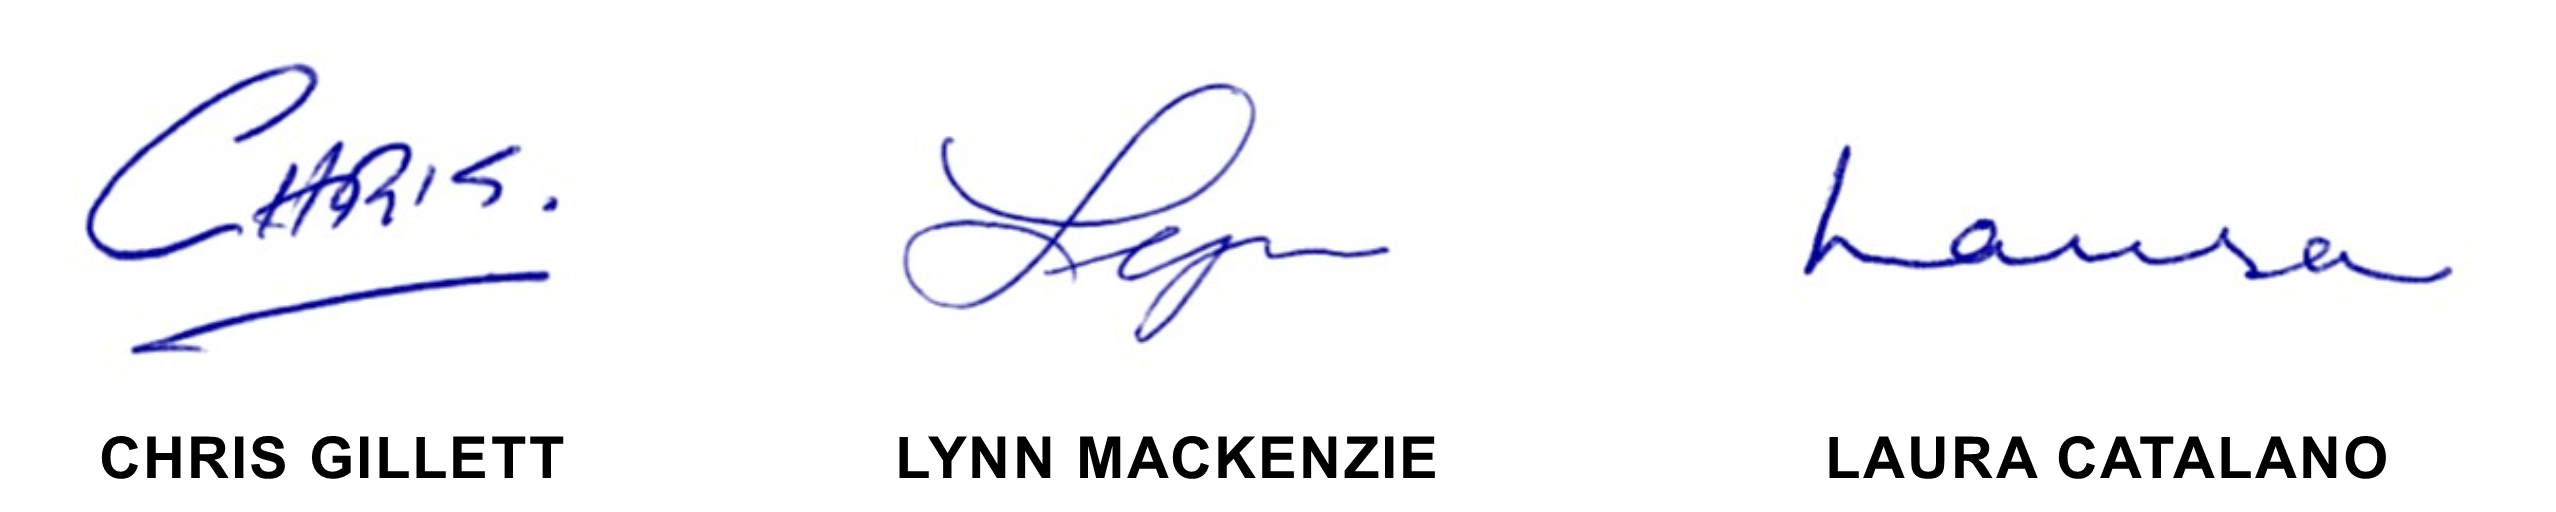 Chris Lynn Laura SIGNATURES 3.jpg.png